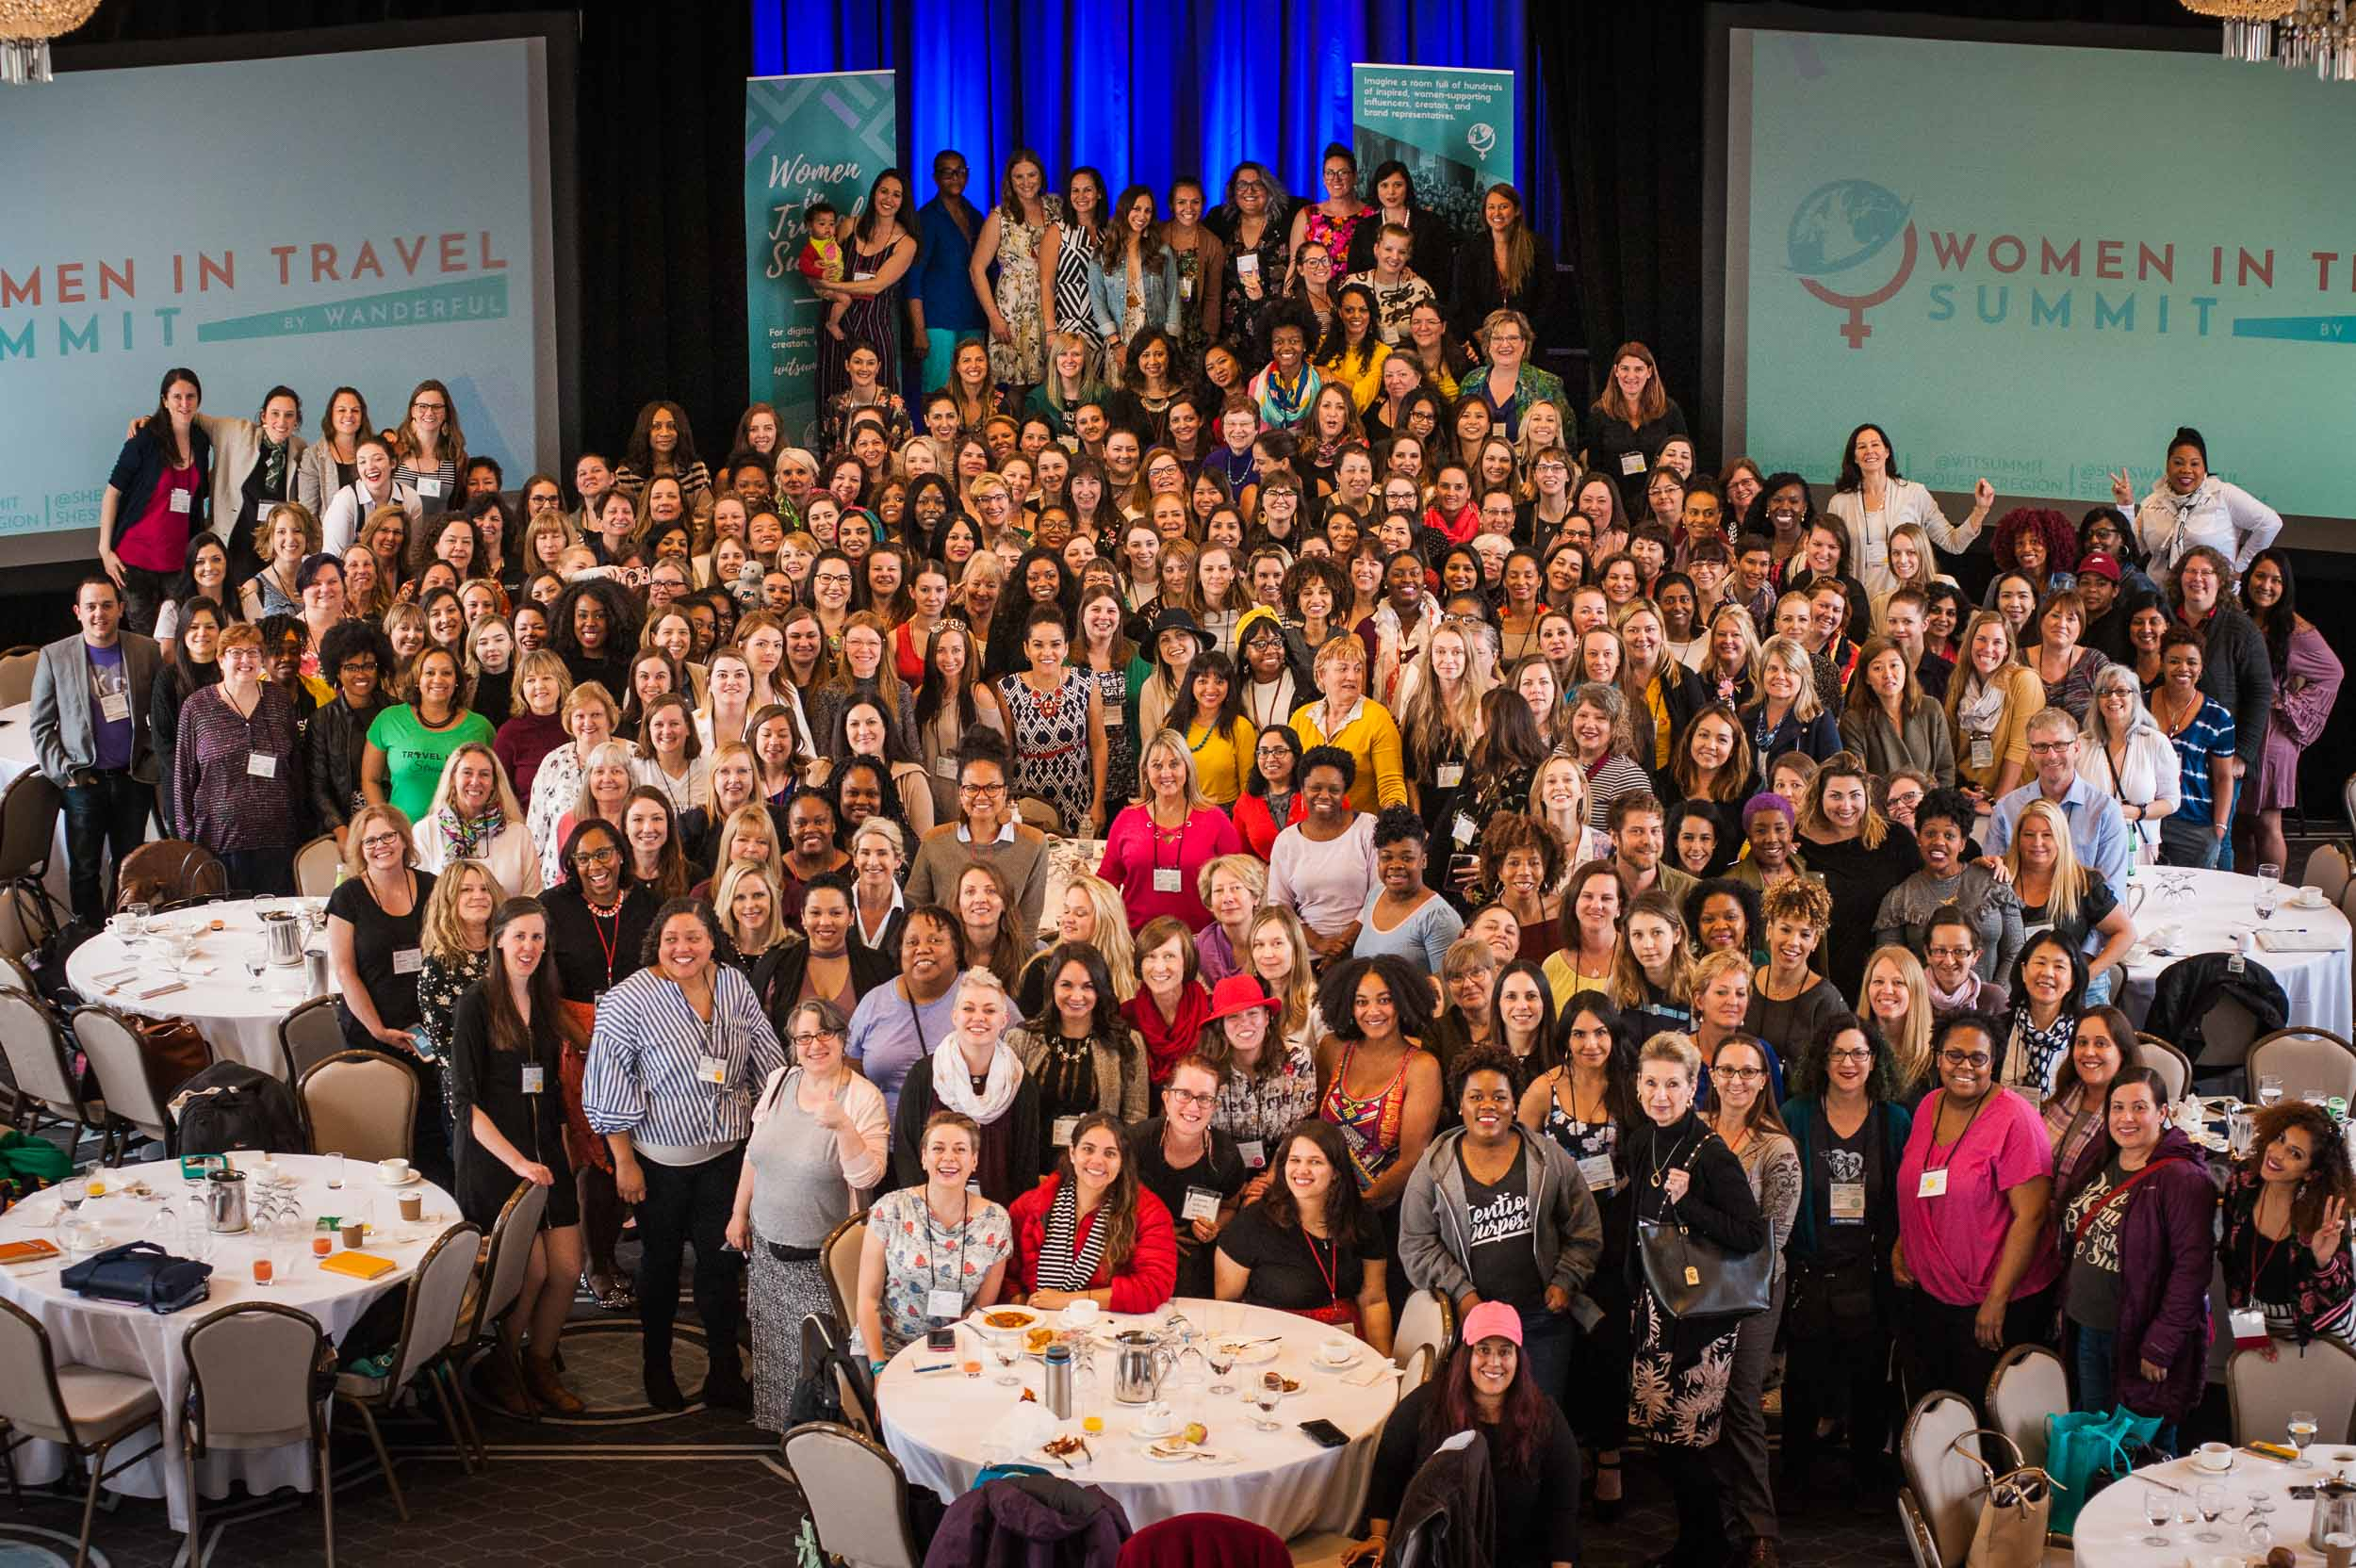 Photo by: Jason Seagle/Women in Travel Summit